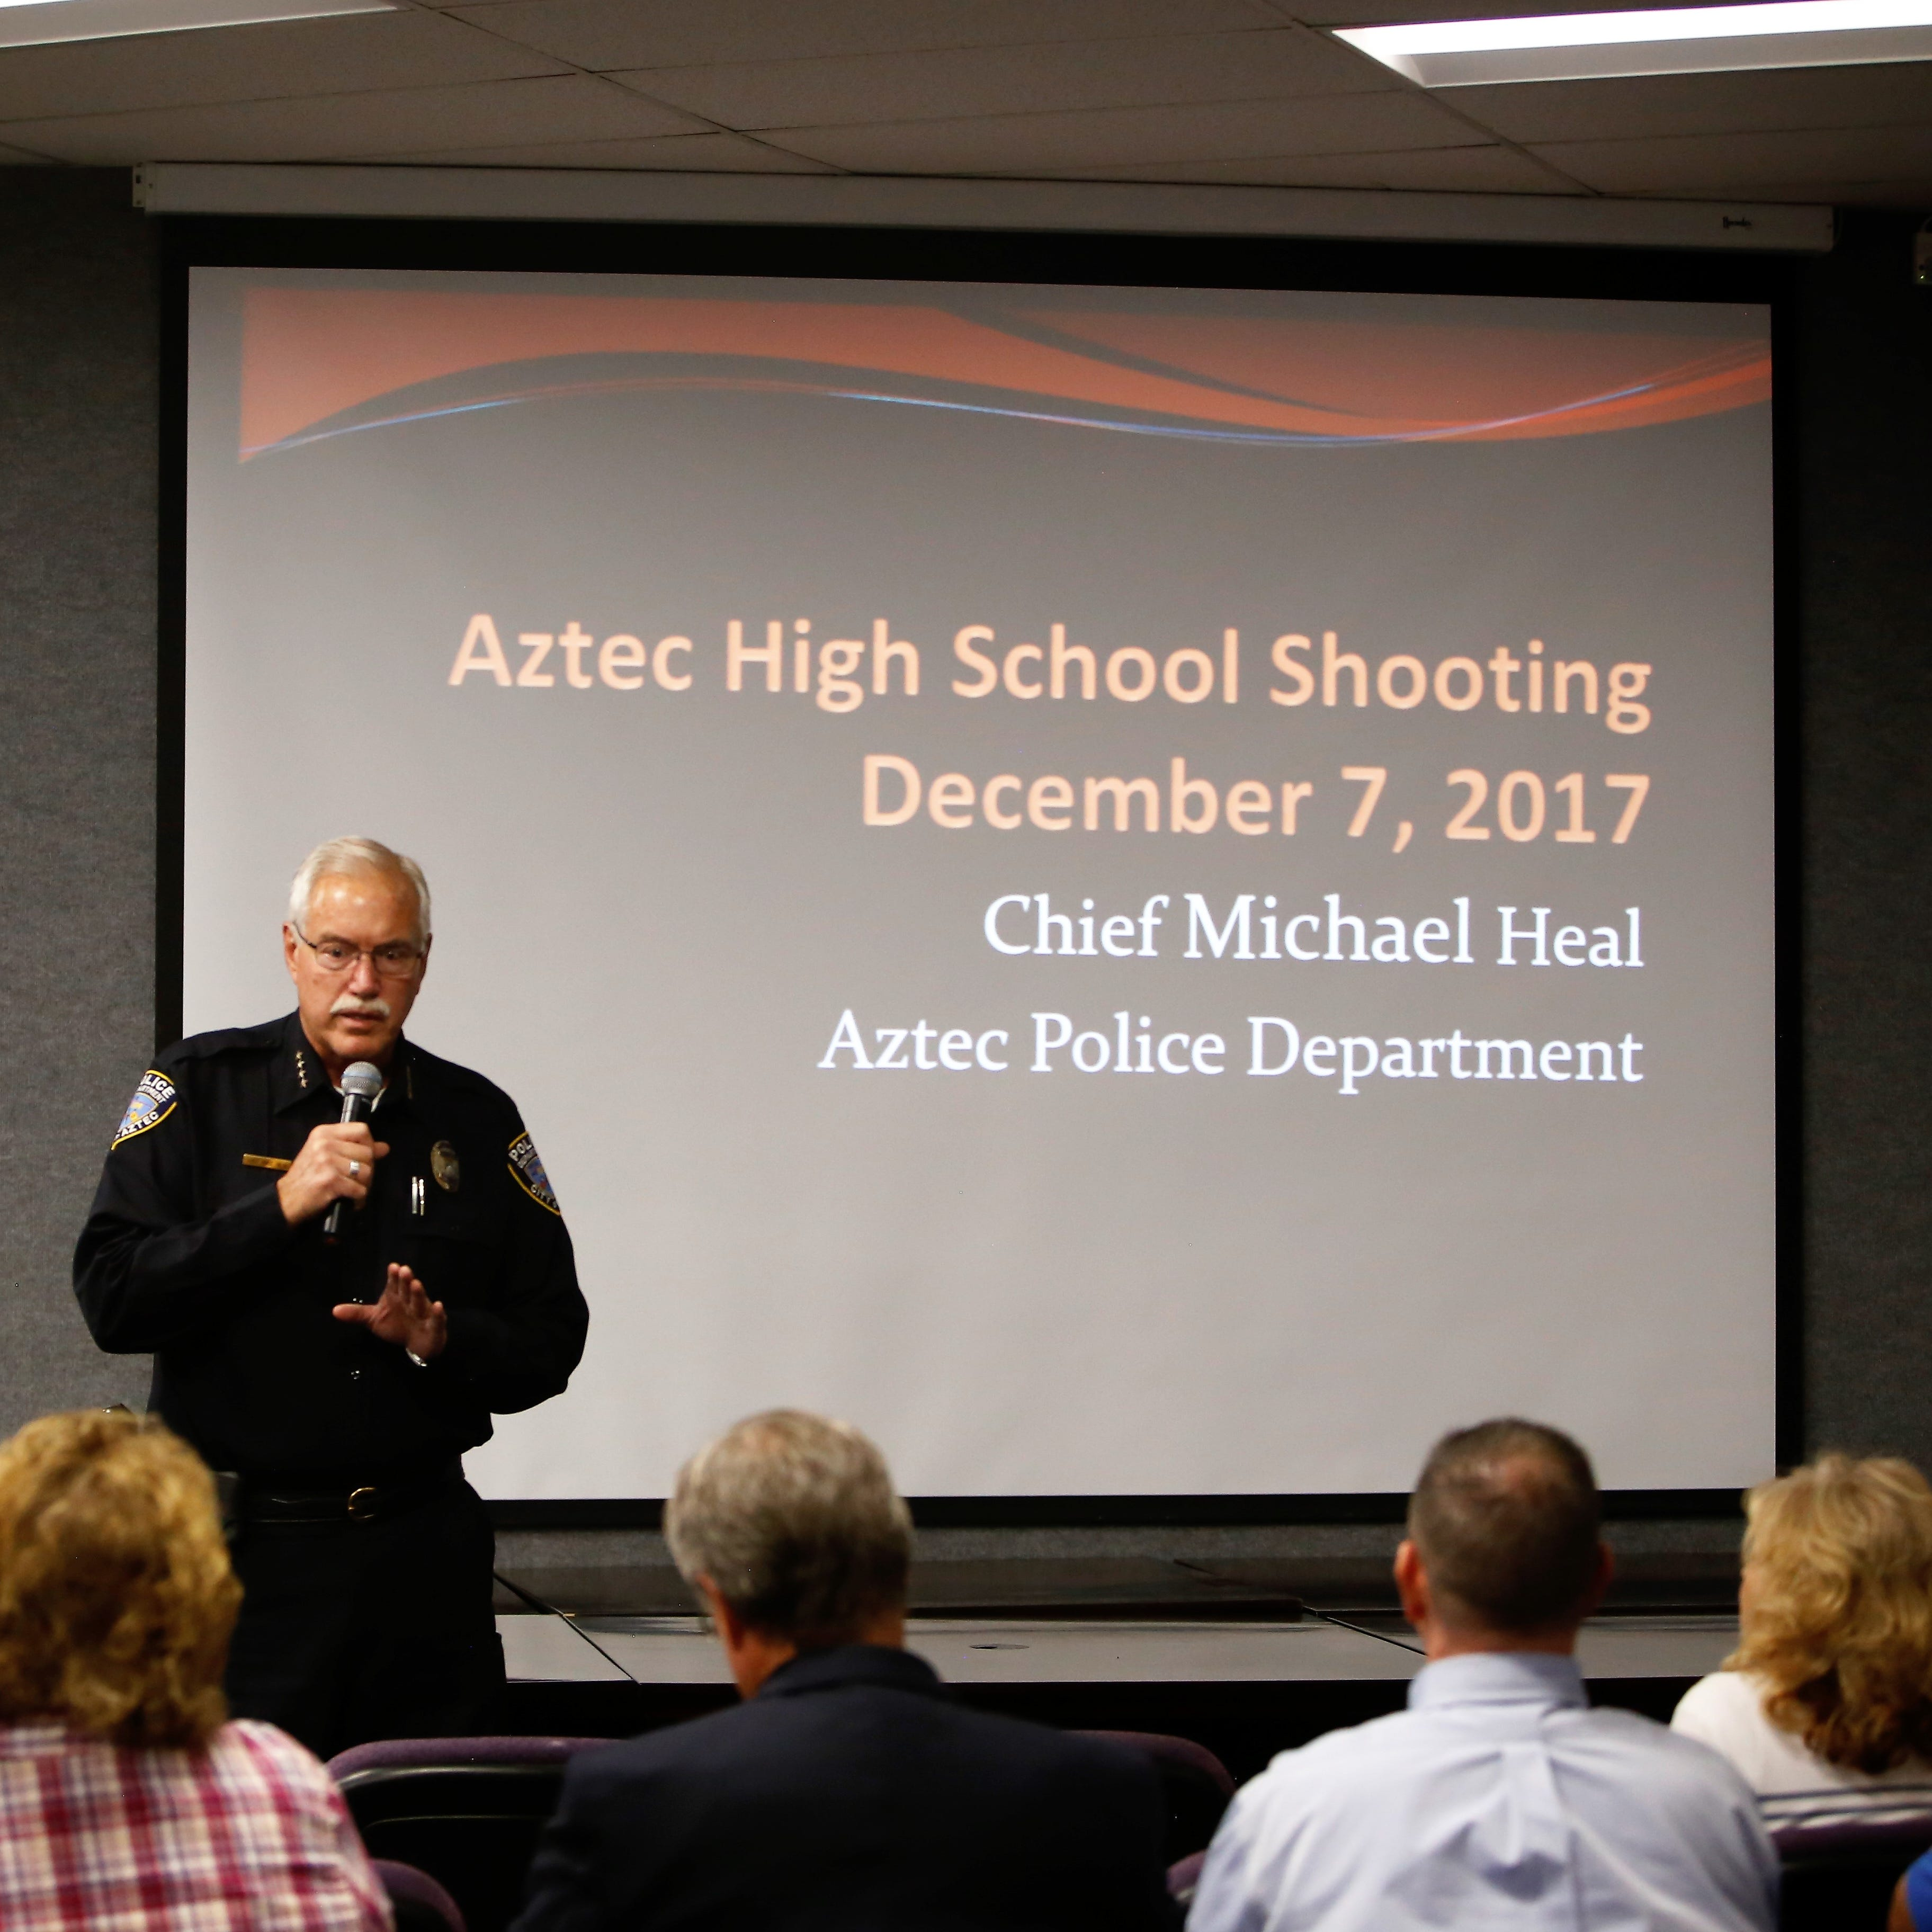 Police chief gives Aztec High School shooting presentation